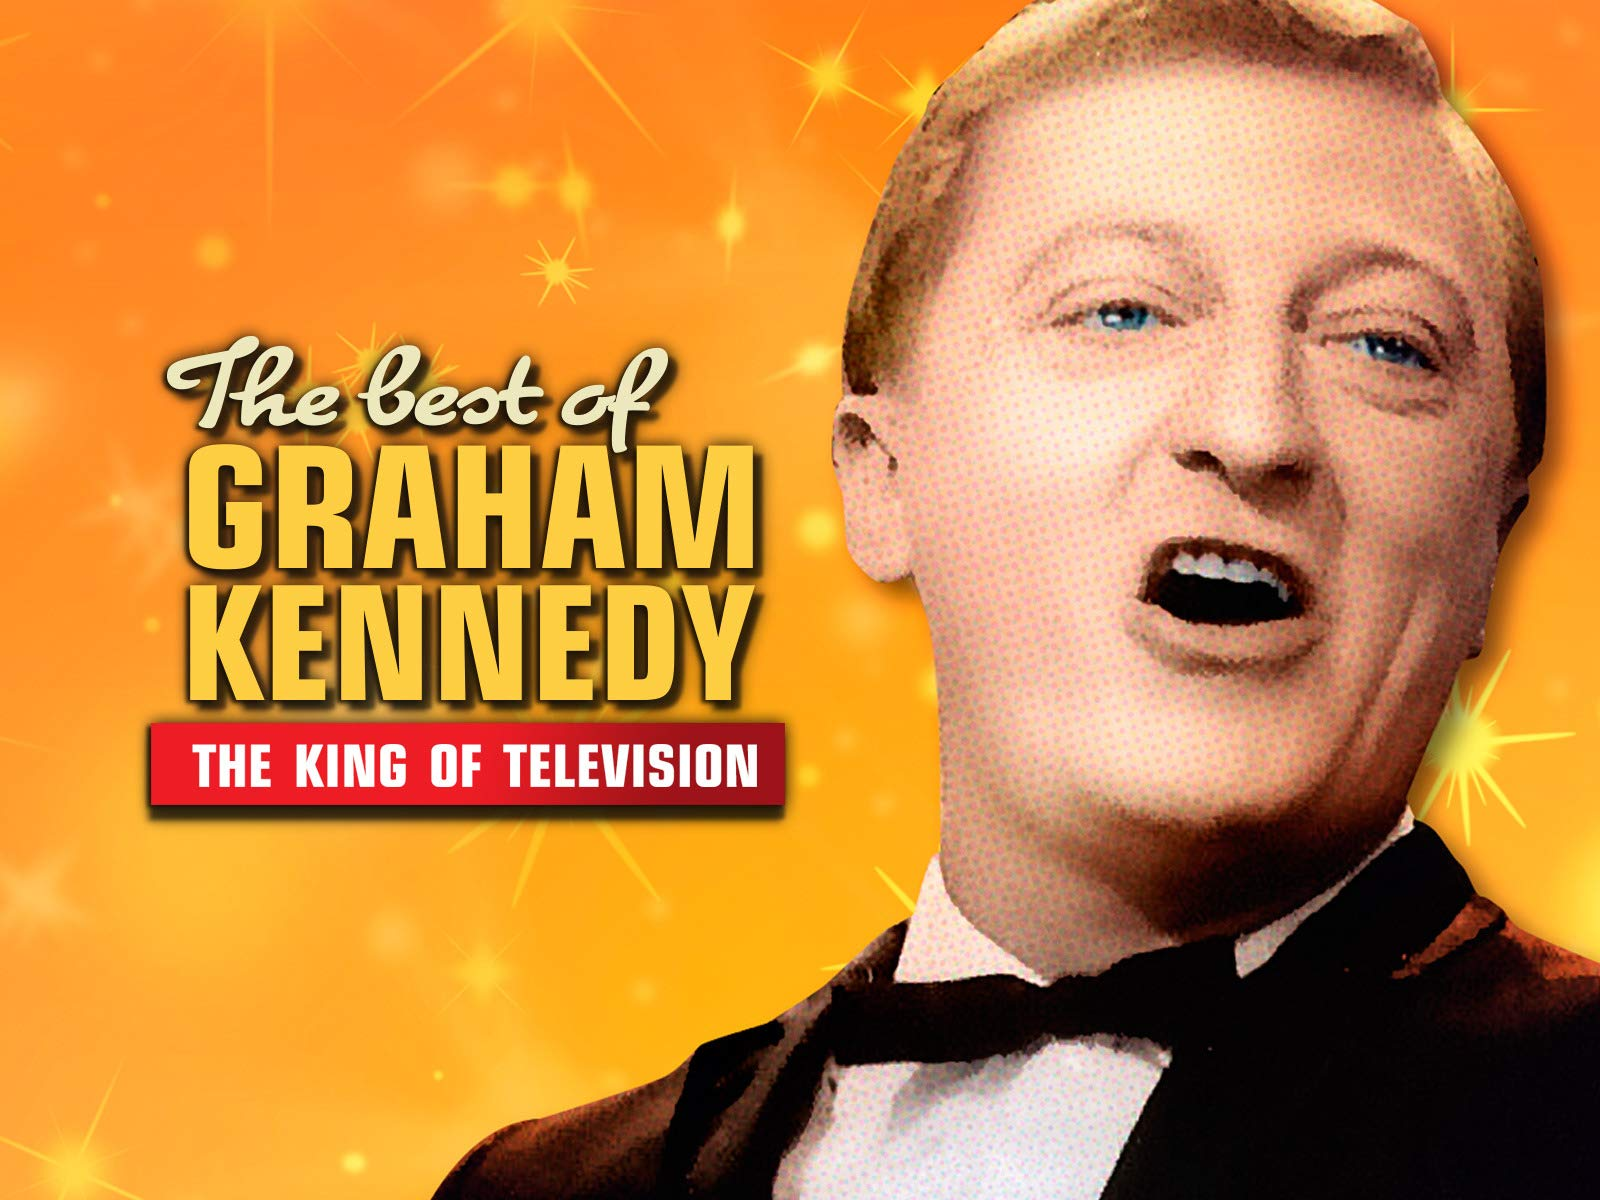 The Best of Graham Kennedy - Season 1